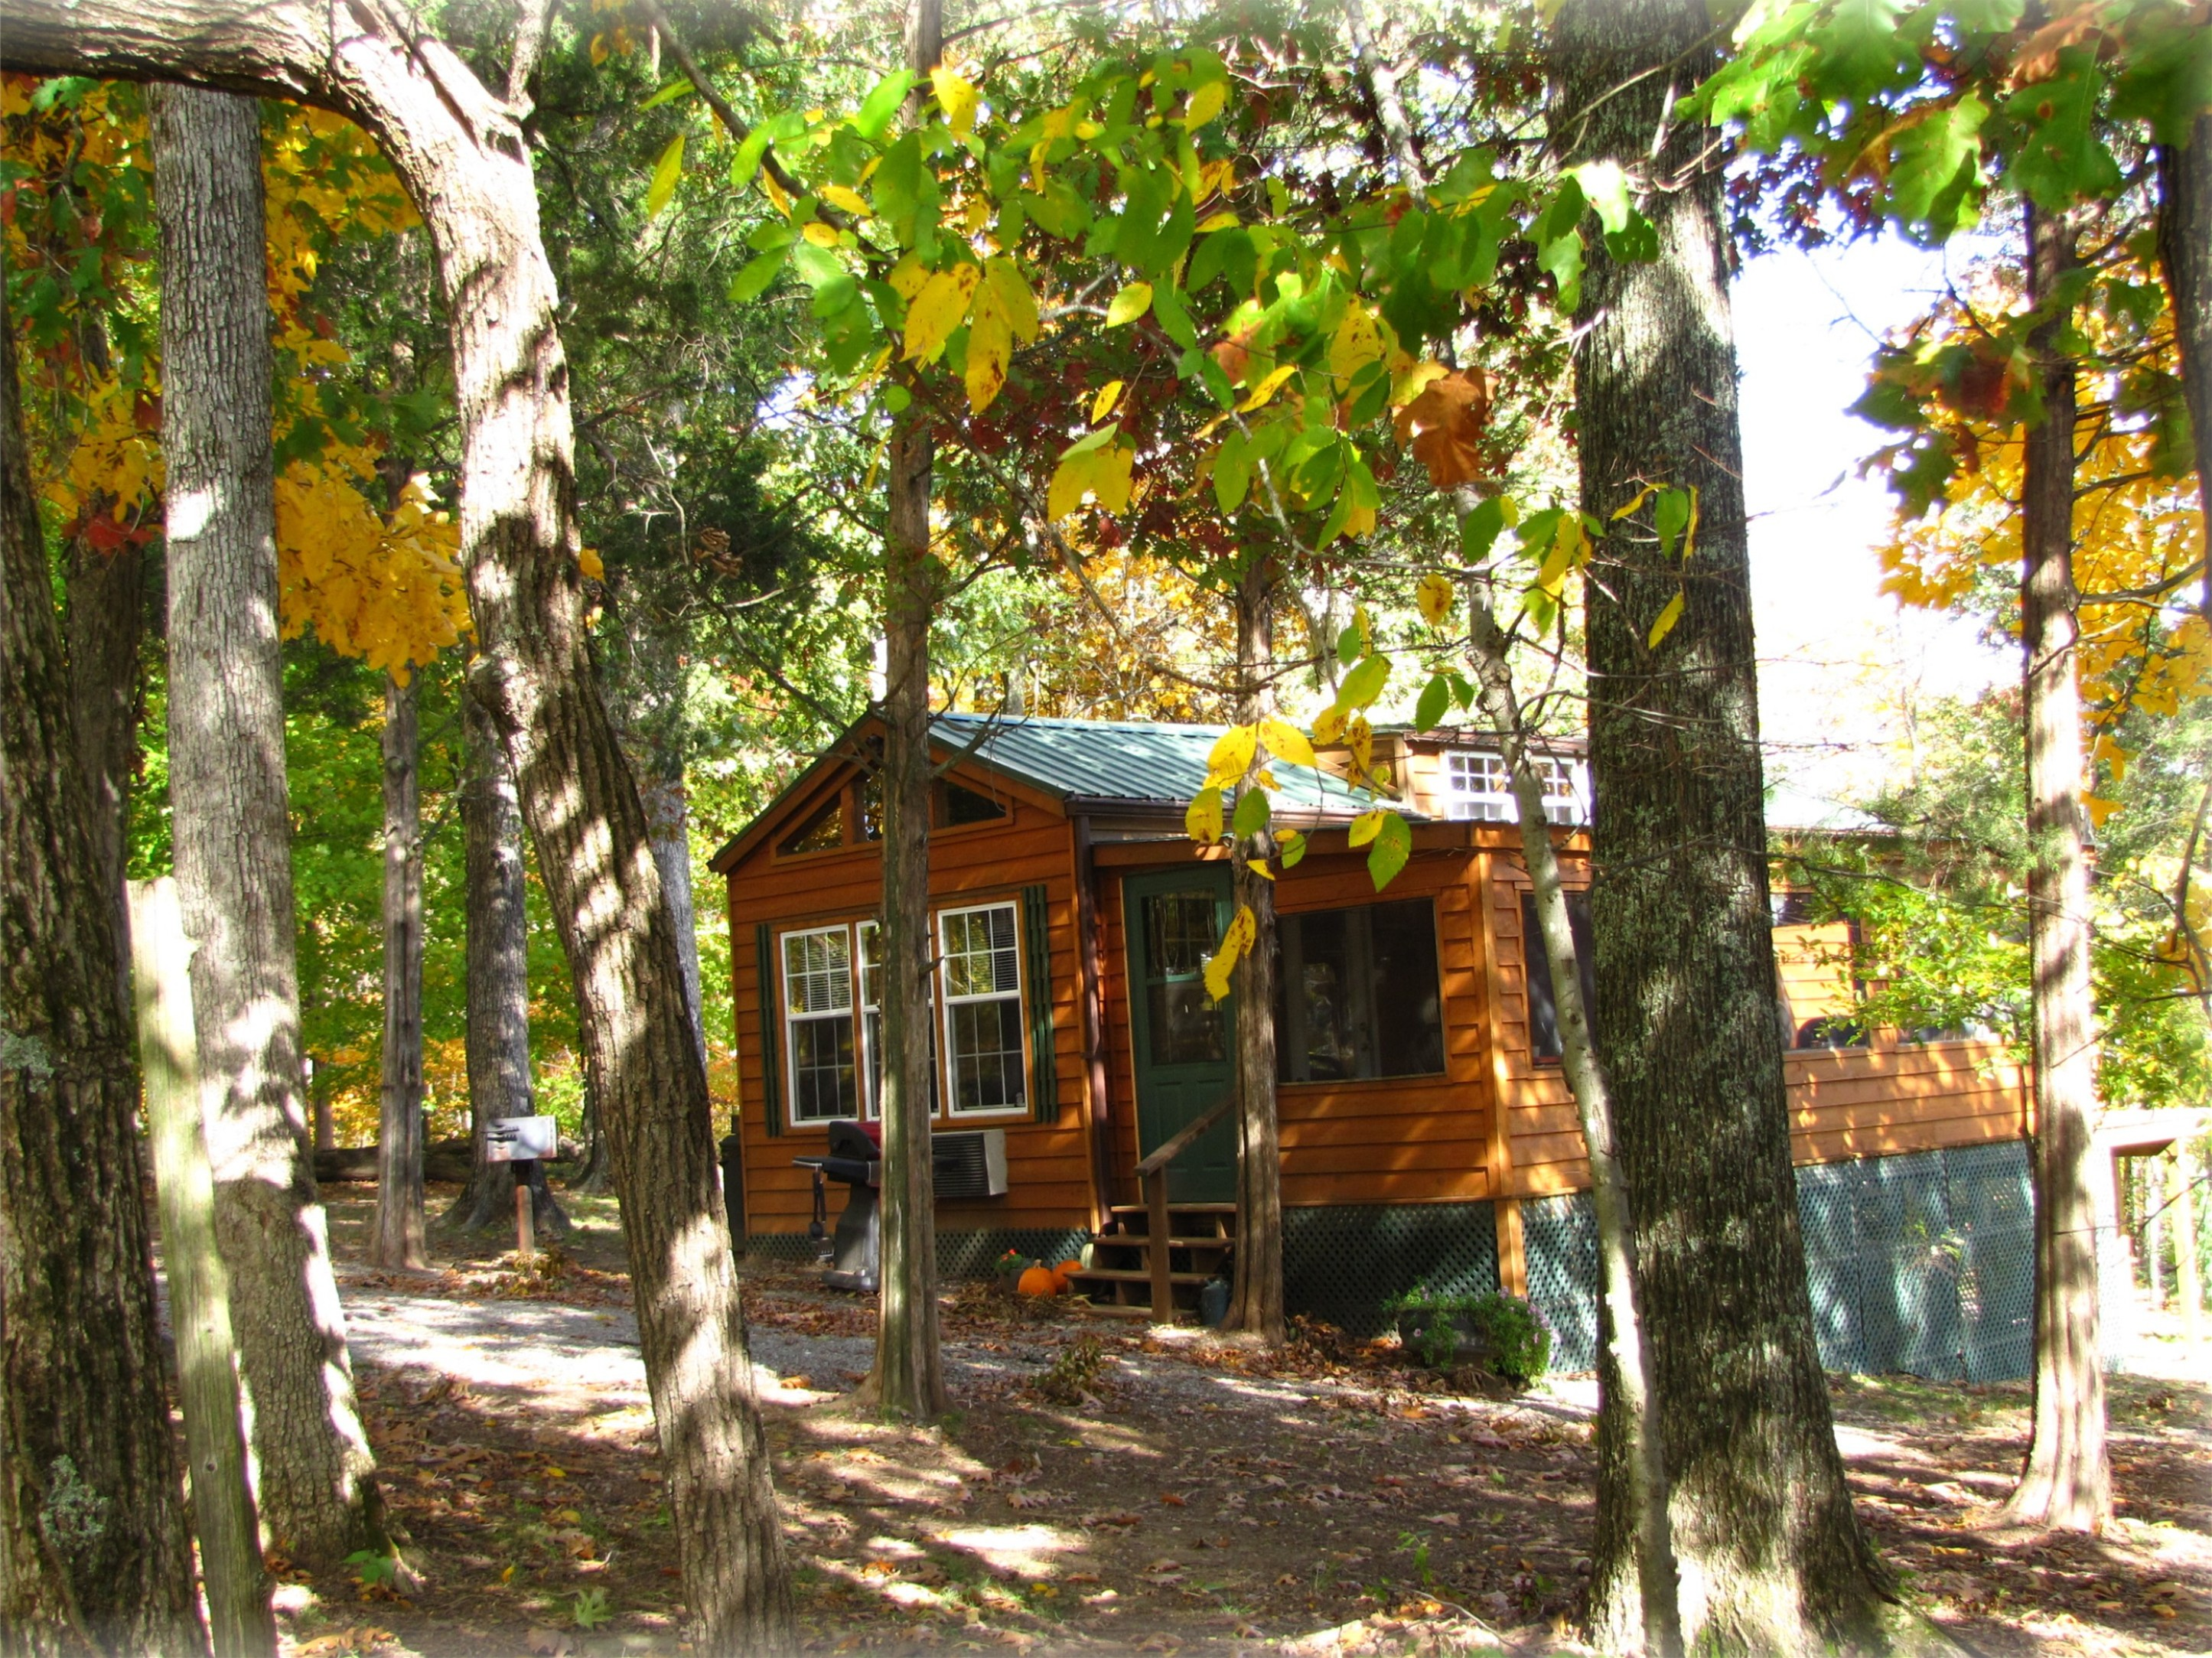 serenity ozarks rentals lake branson usa of west cabins vacation cabin the missouri log